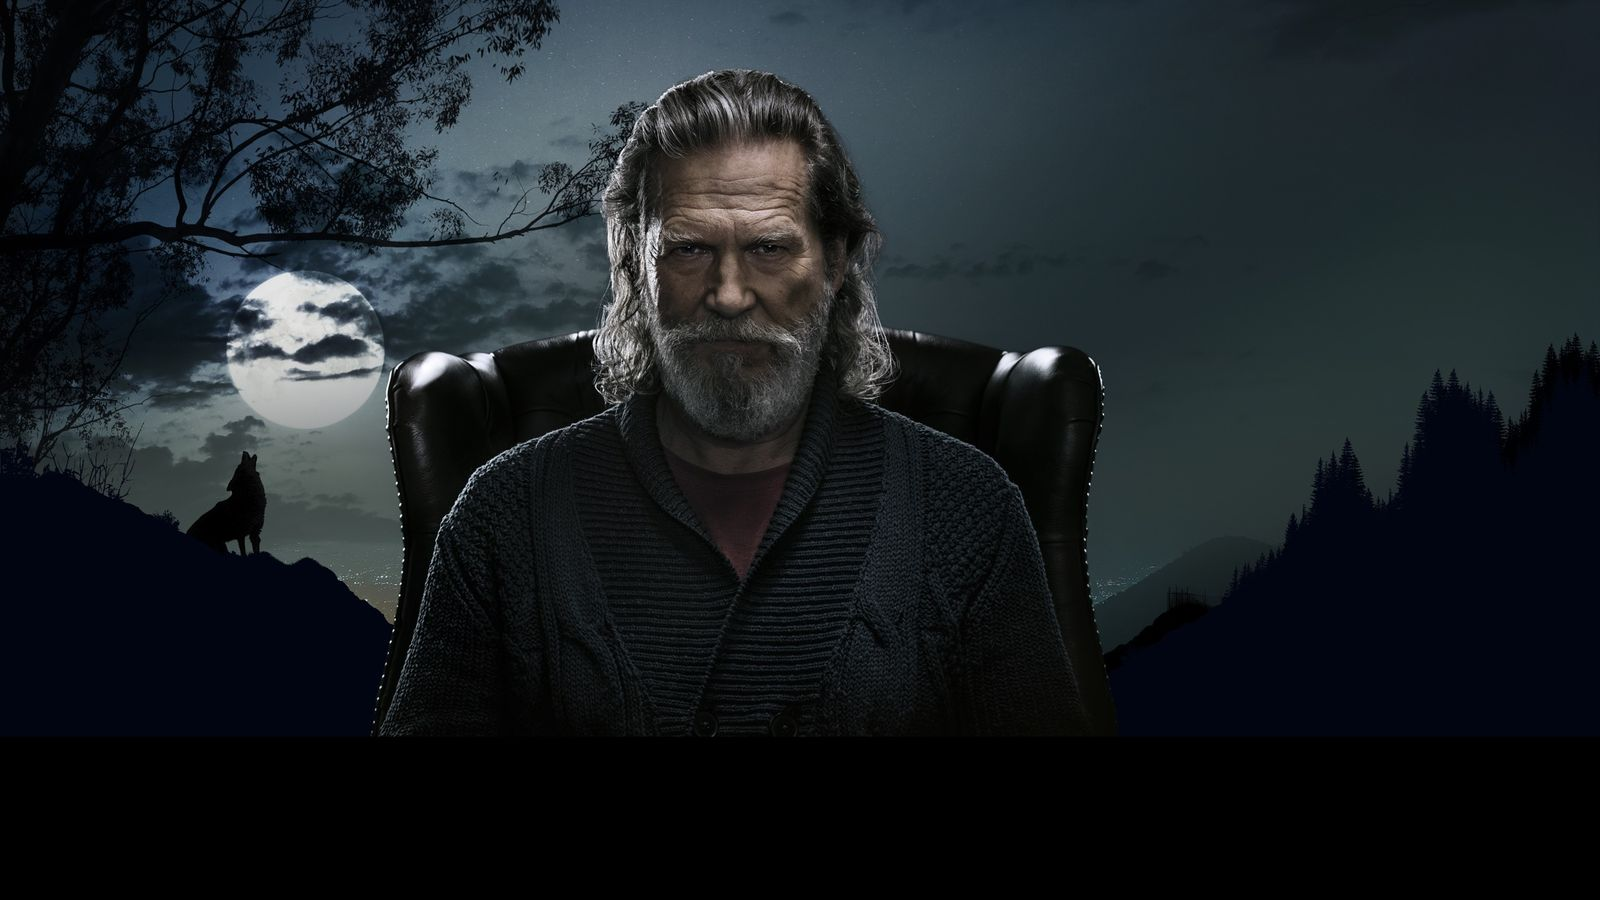 Jeff Bridges Wallpaper 2   1600 X 900 stmednet 1600x900